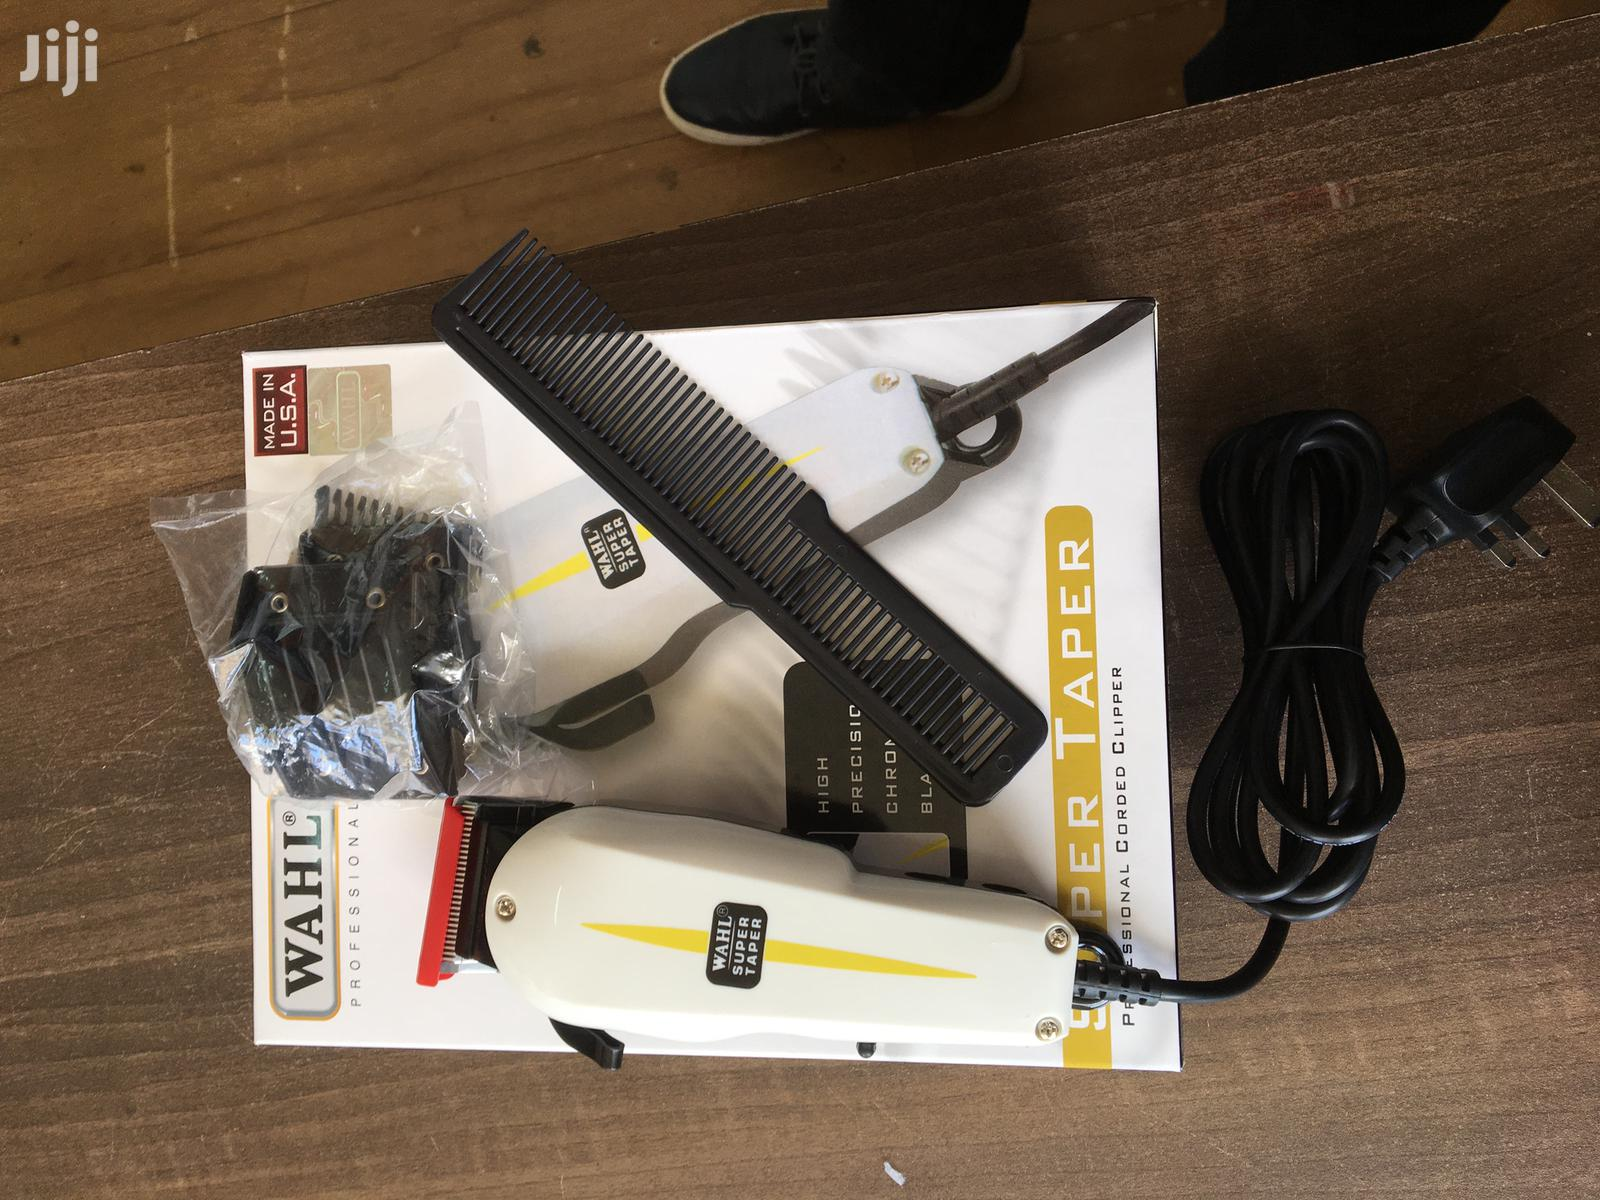 Original Wahl Super Taper Shaving Machine With Four Combs | Tools & Accessories for sale in Nairobi Central, Nairobi, Kenya